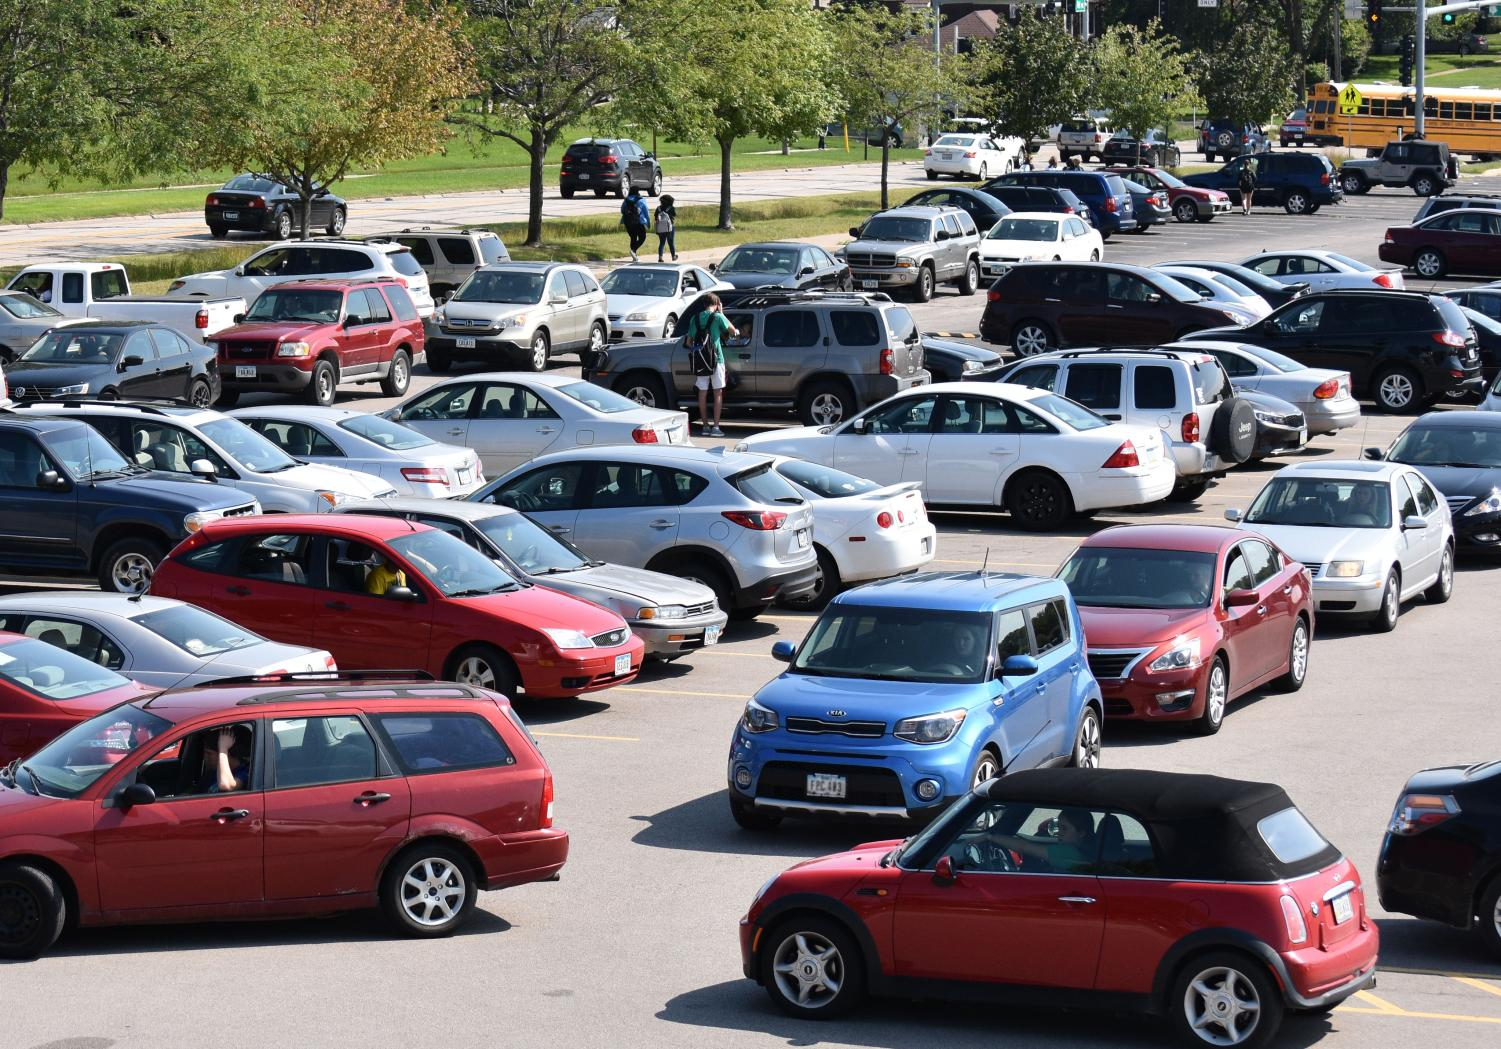 View of the south parking lot after school.